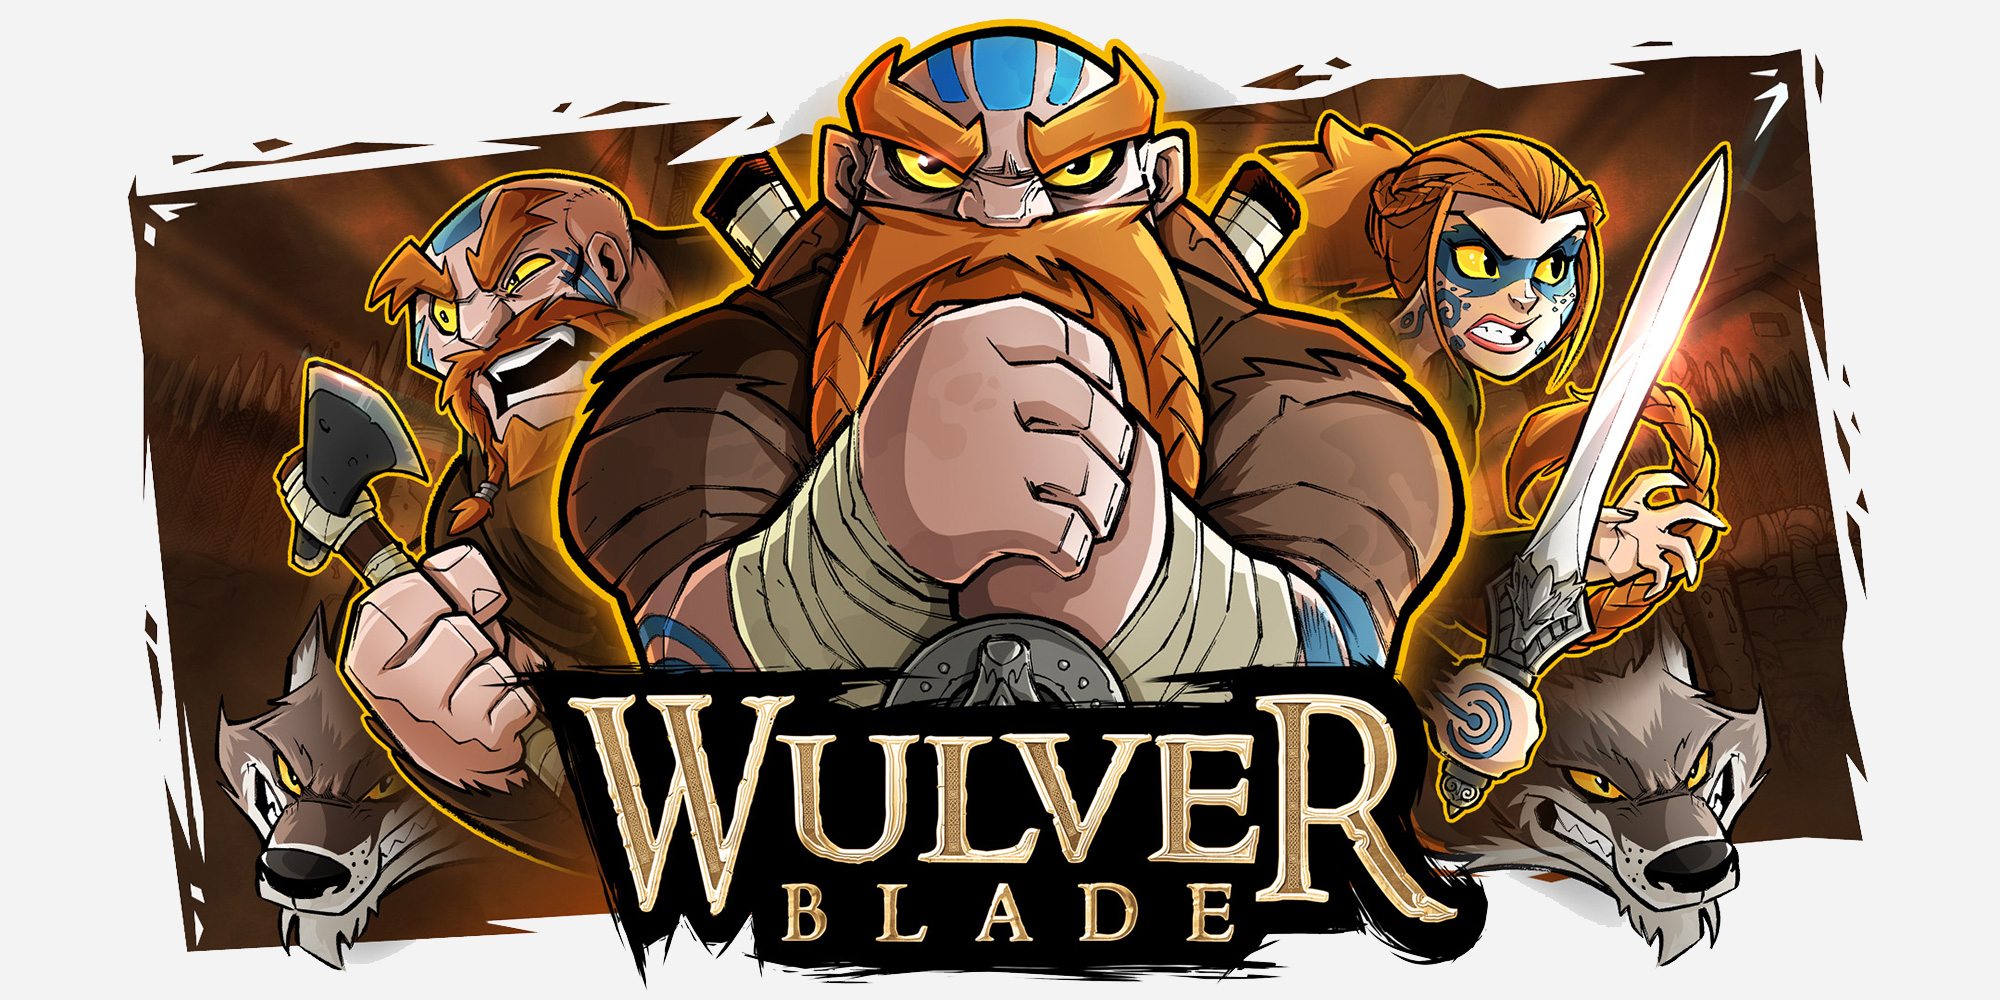 Wulverblade | Nintendo Switch download software | Games | Nintendo